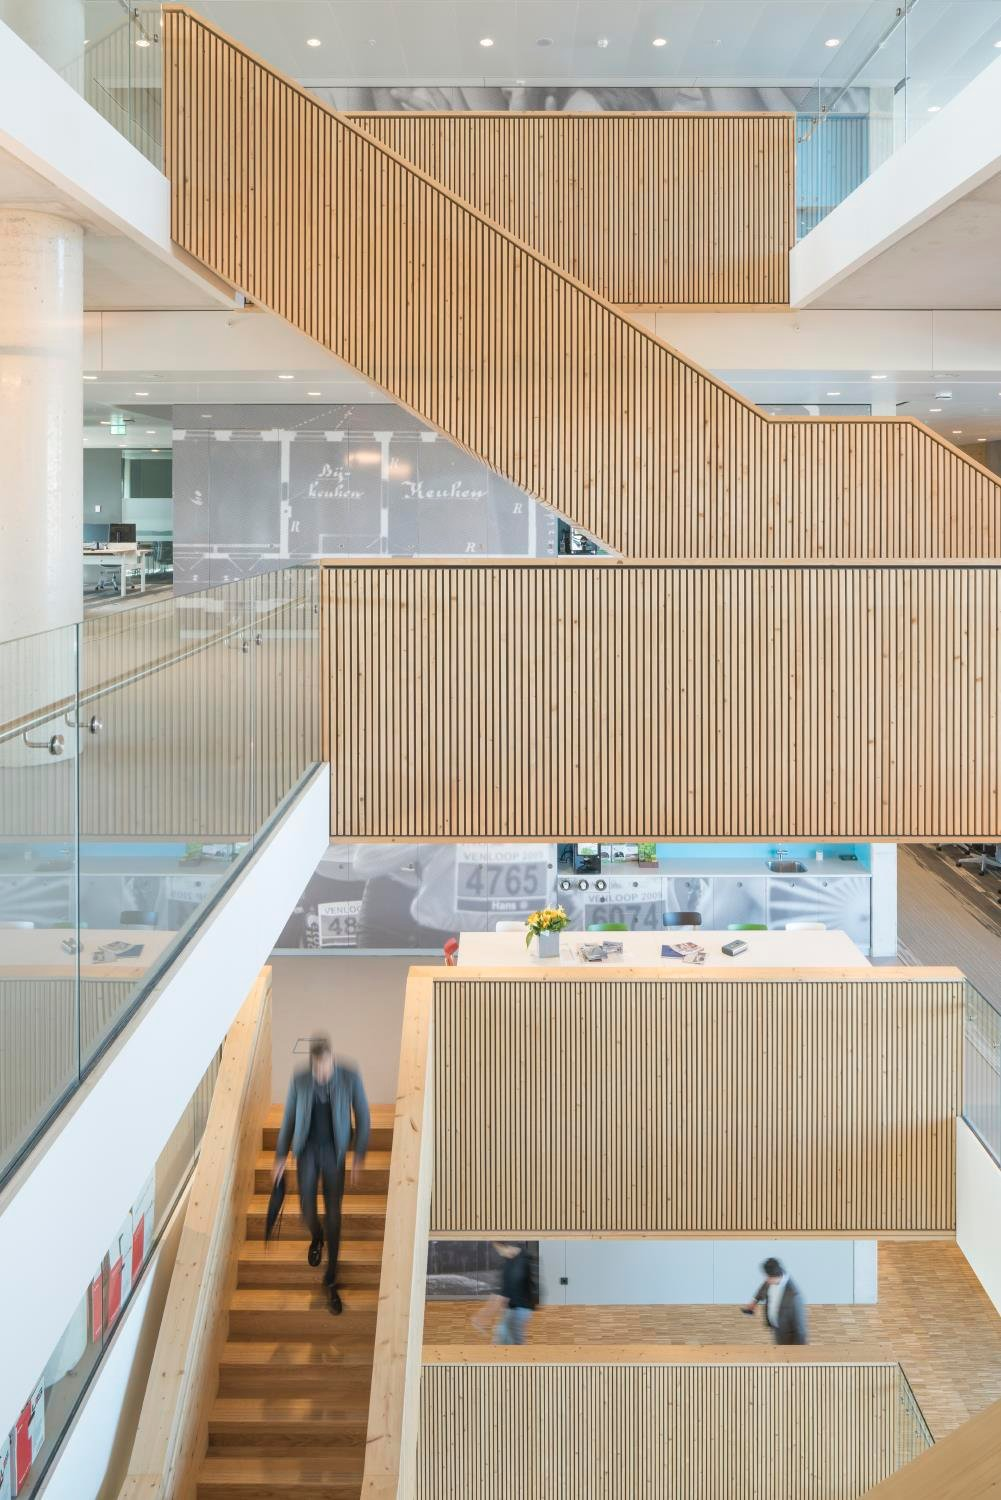 The stairs form the hearth of the building, their openness encourages dropping by colleagues on different floors.